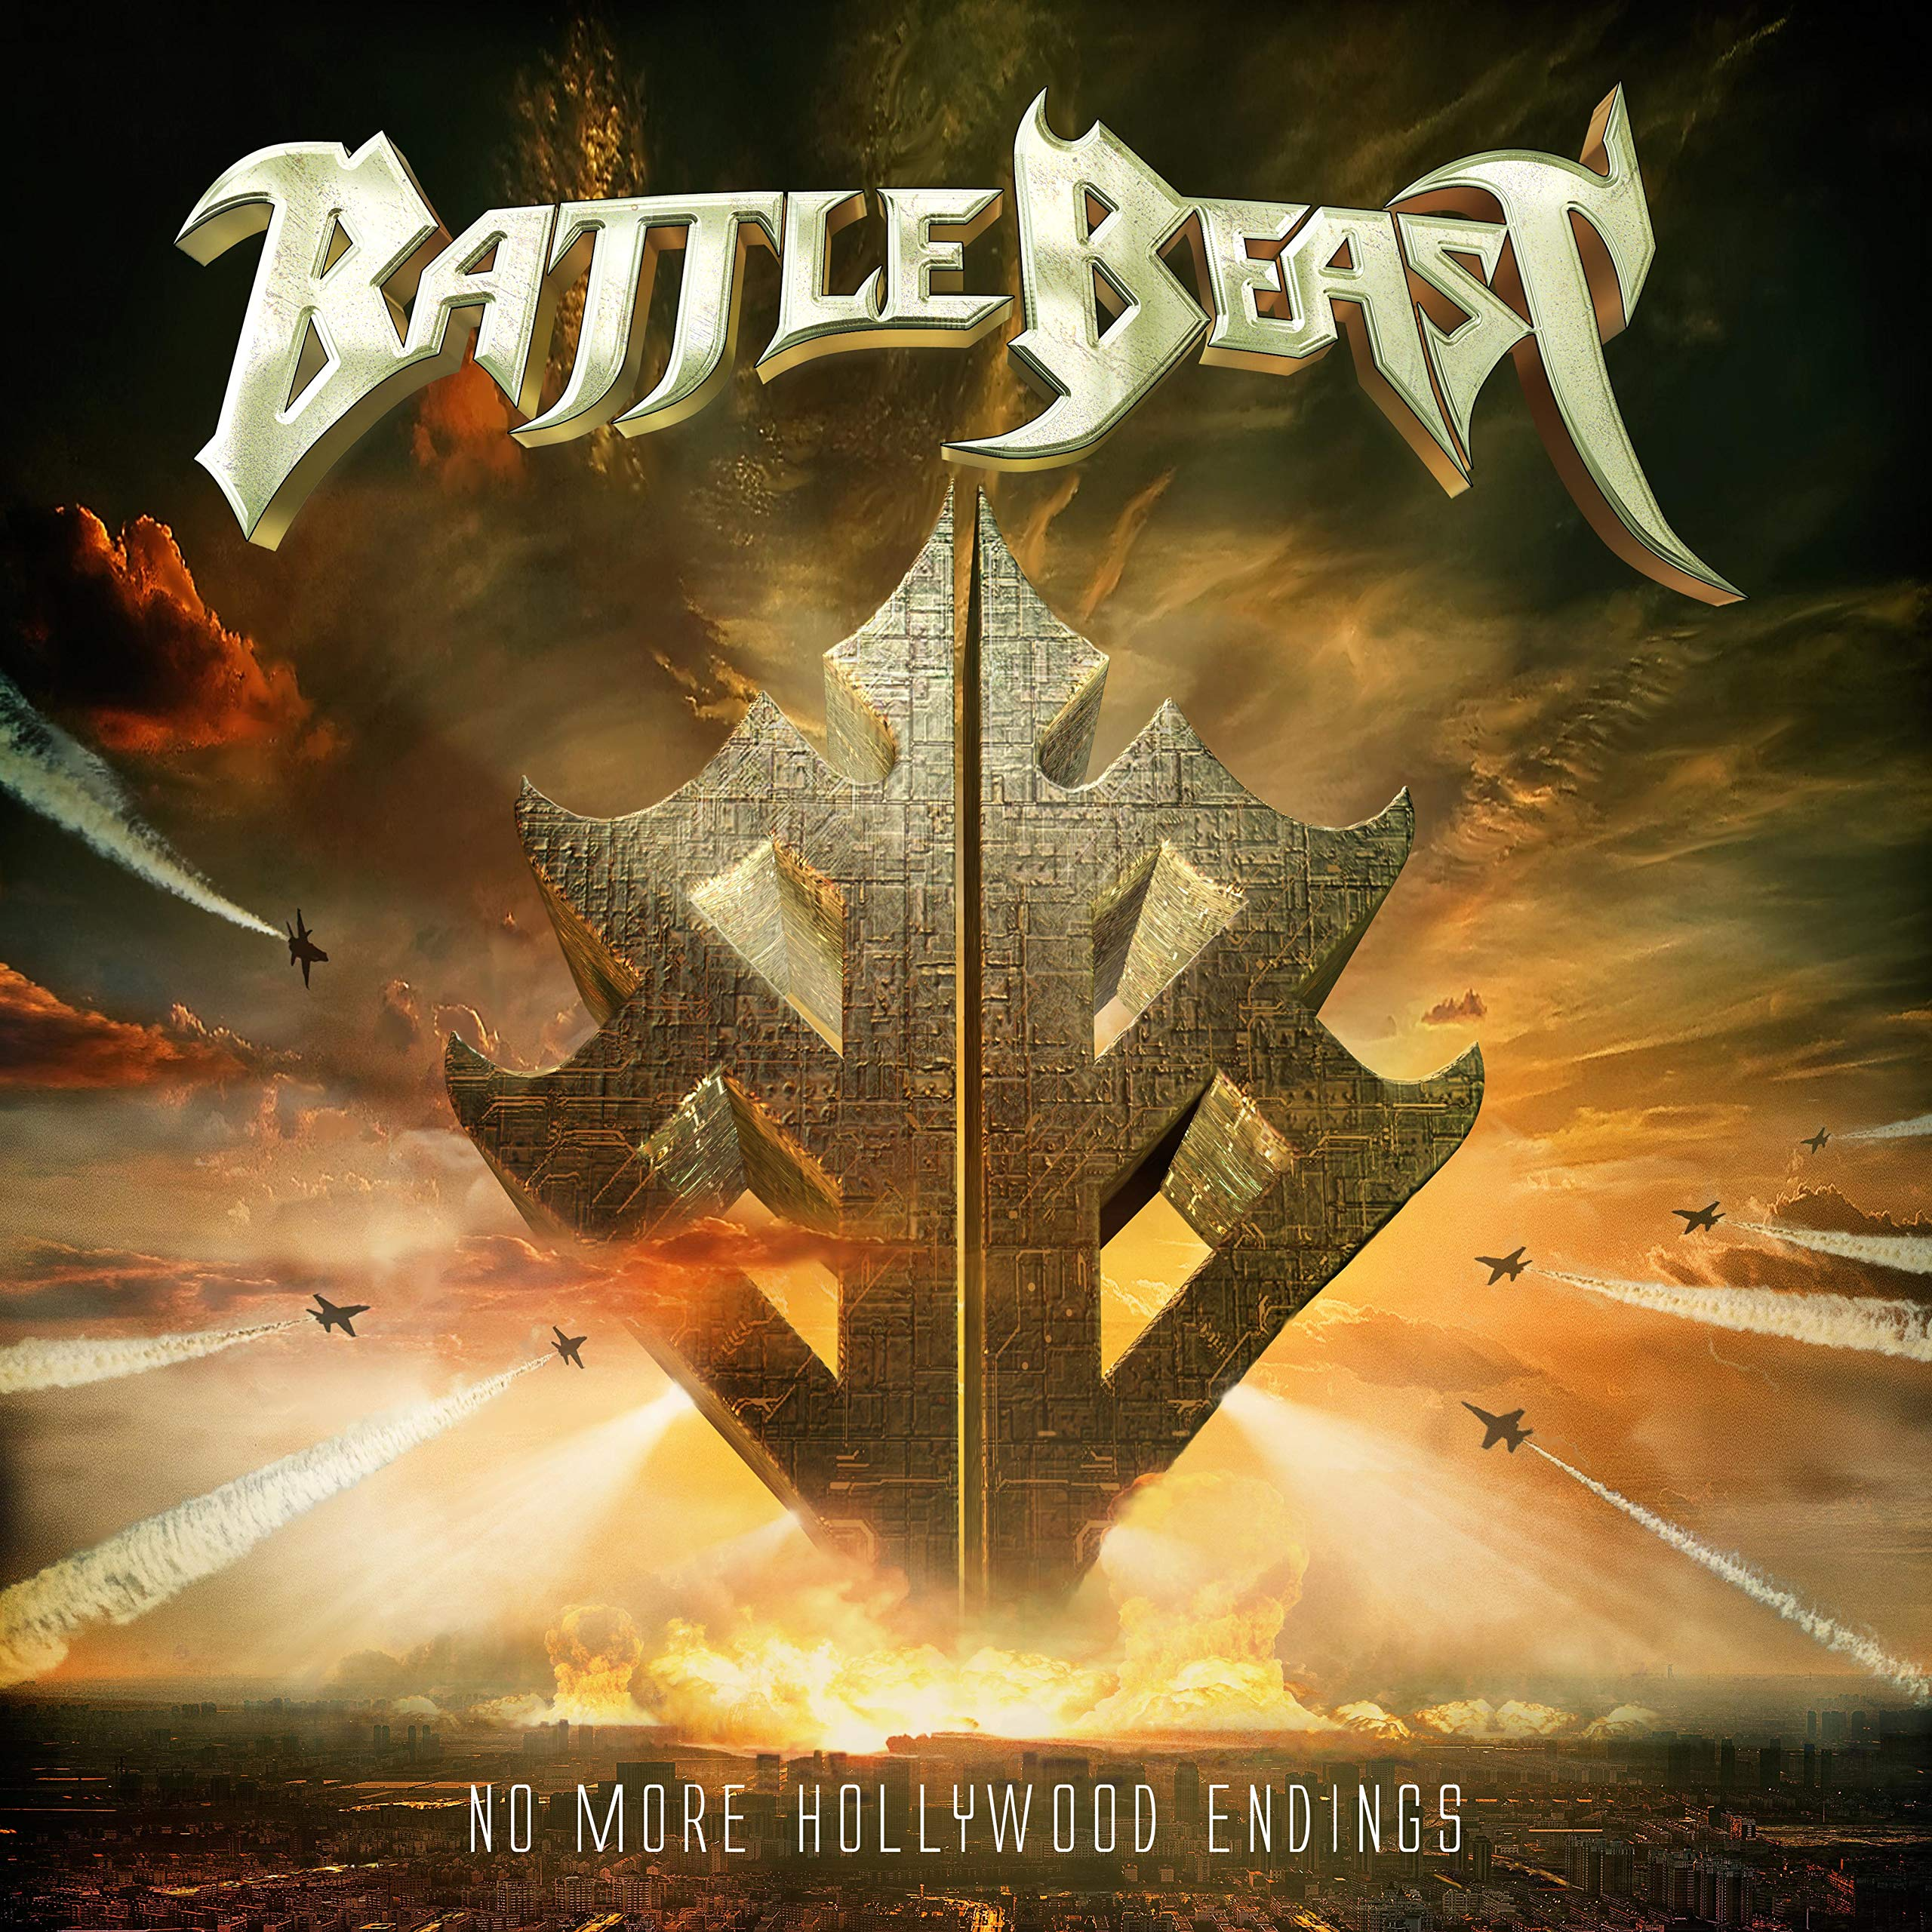 Battle Beast - No More Hollywood Endings (2019) [FLAC] Download